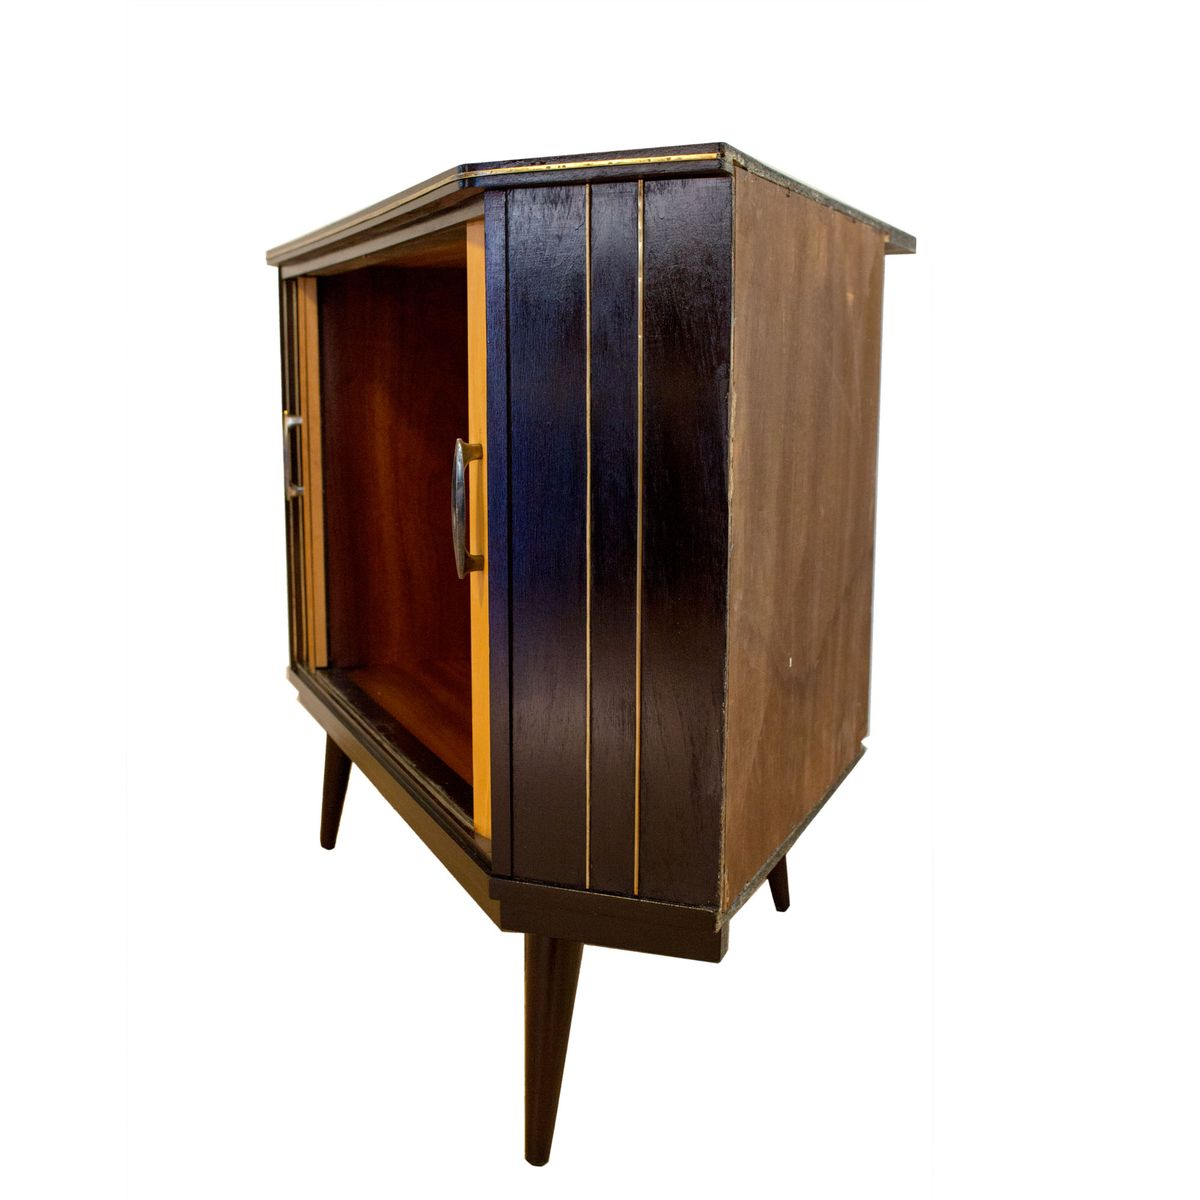 deutscher mid century eckschrank mit schiebet ren bei pamono kaufen. Black Bedroom Furniture Sets. Home Design Ideas